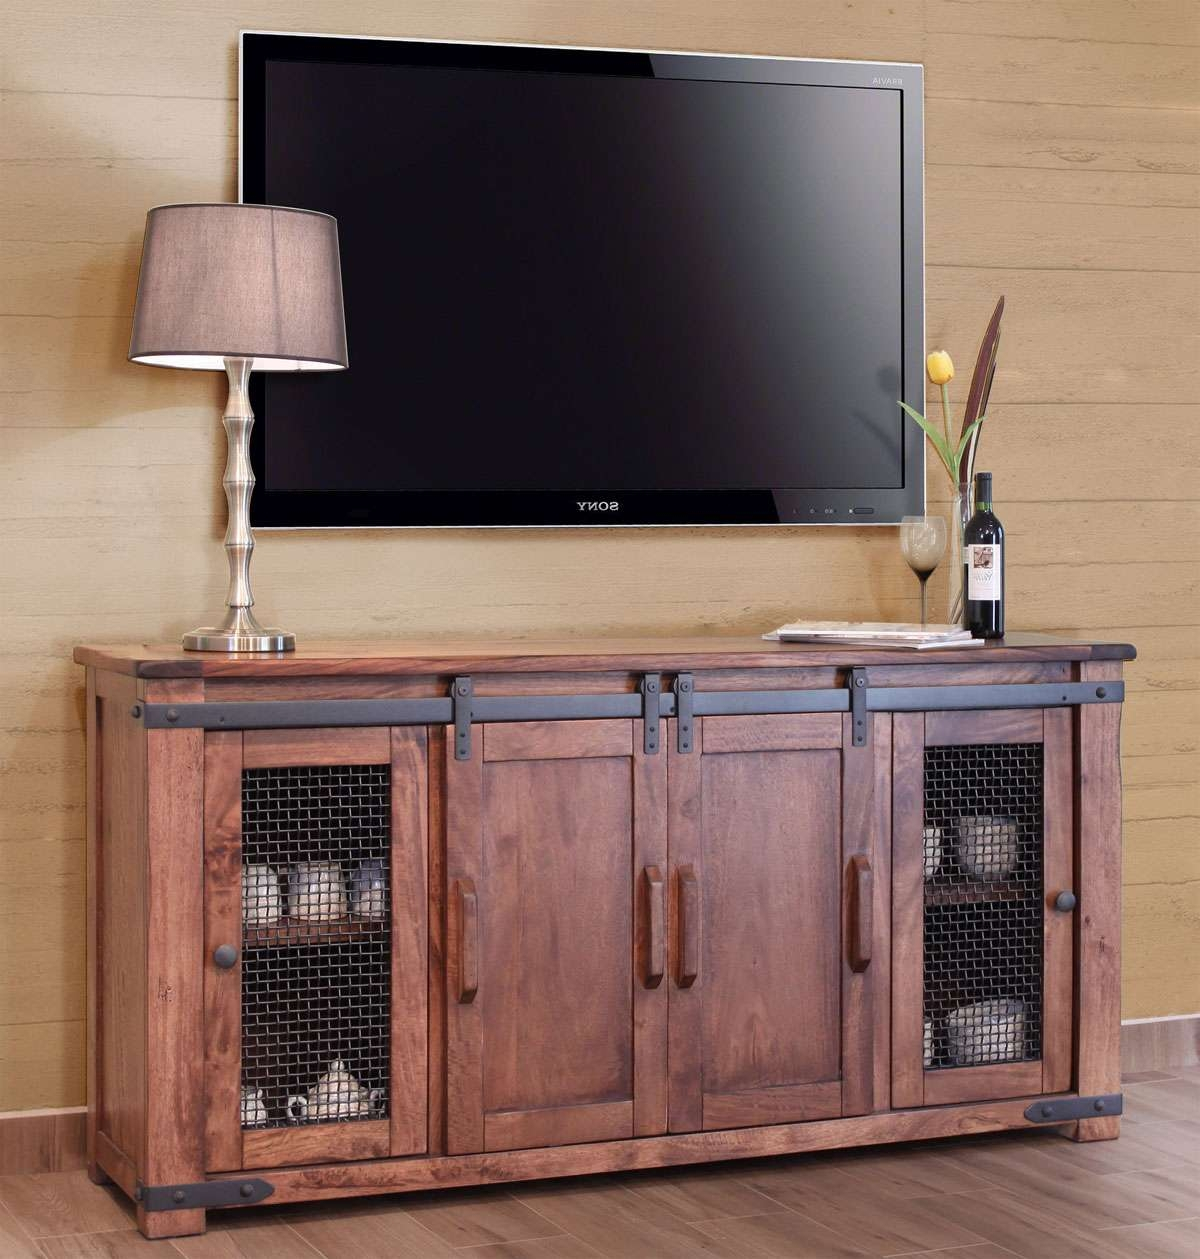 Tv : 70 Inch Tv Stand Amazing Rustic 60 Inch Tv Stands Greenview With Regard To Rustic White Tv Stands (View 12 of 20)